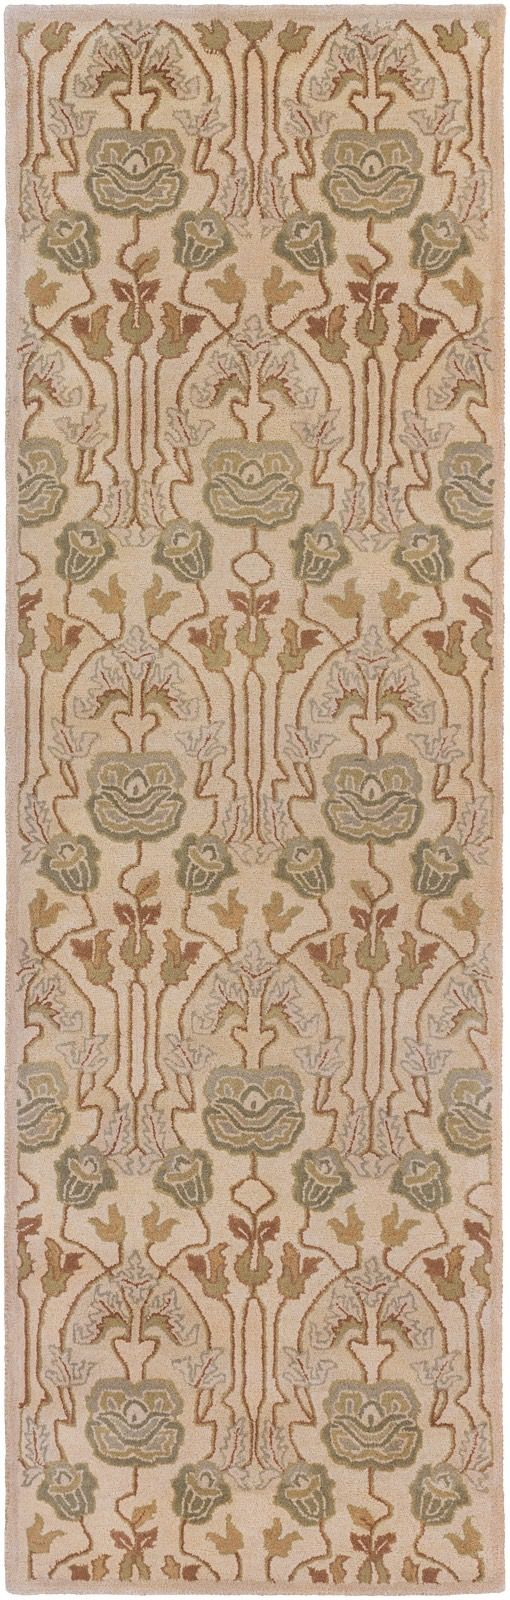 surya mentone contemporary area rug collection